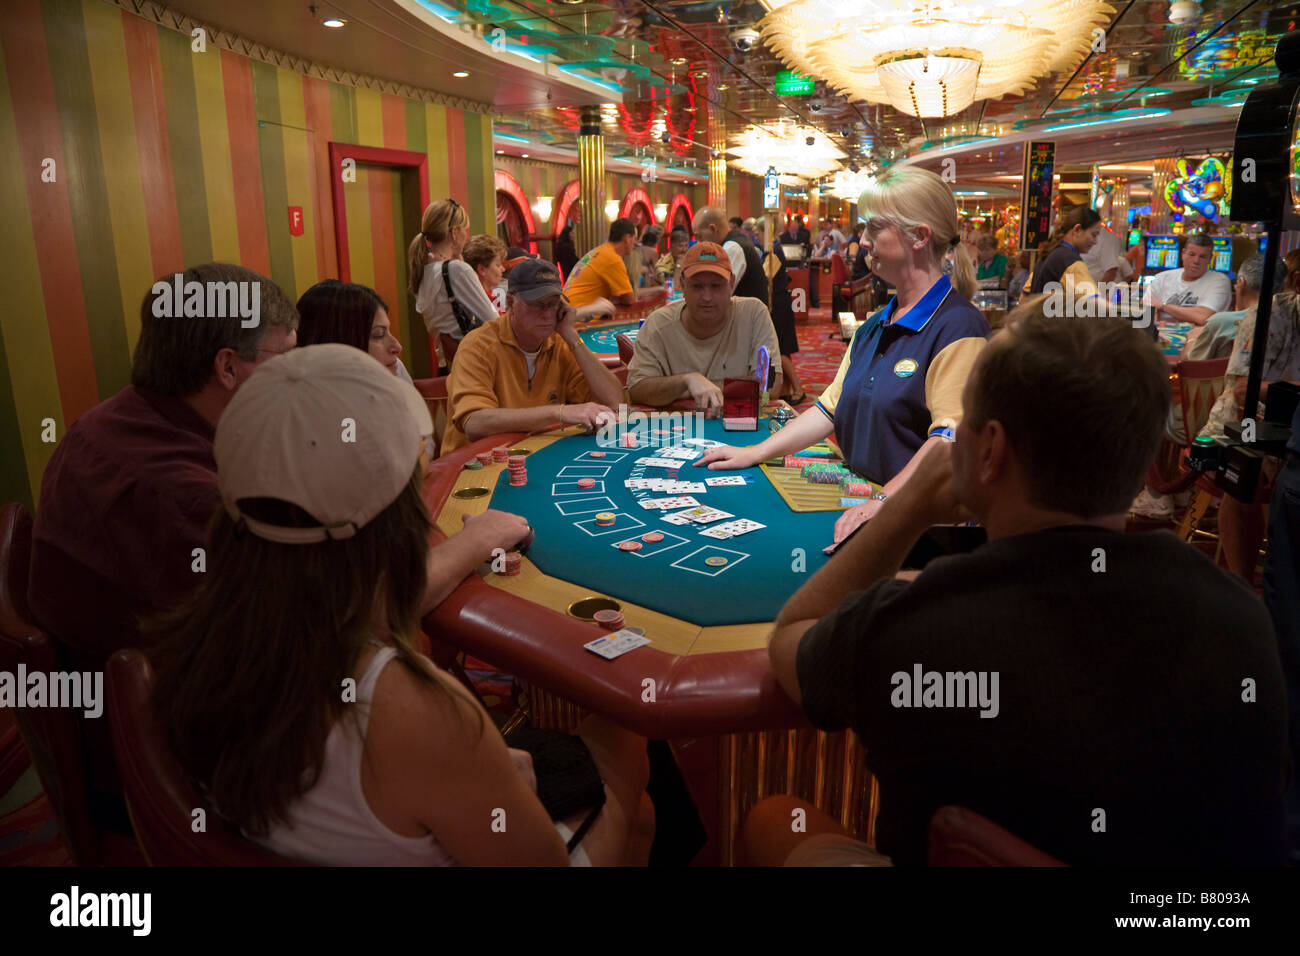 People playing black jack in casino on Royal Caribbean Navigator of the Seas cruise ship - Stock Image